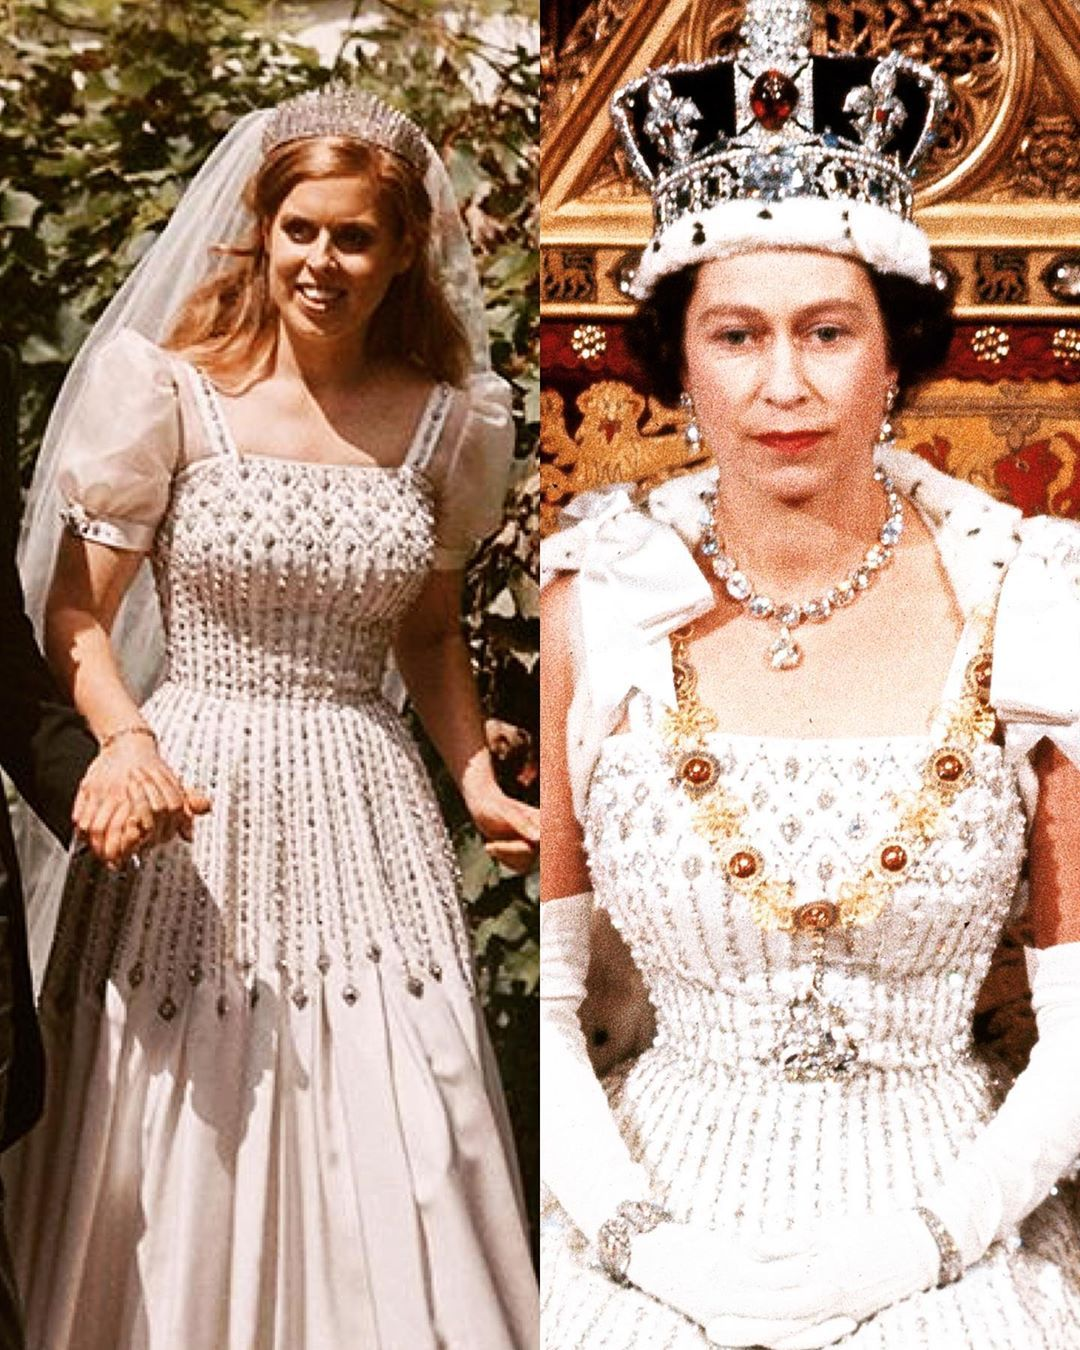 Windsor Royal Family S Instagram Post Princess Beatrice S Wedding Dress First Worn By Her Royal Wedding Gowns Princess Beatrice Wedding Royal Wedding Dress [ 1350 x 1080 Pixel ]